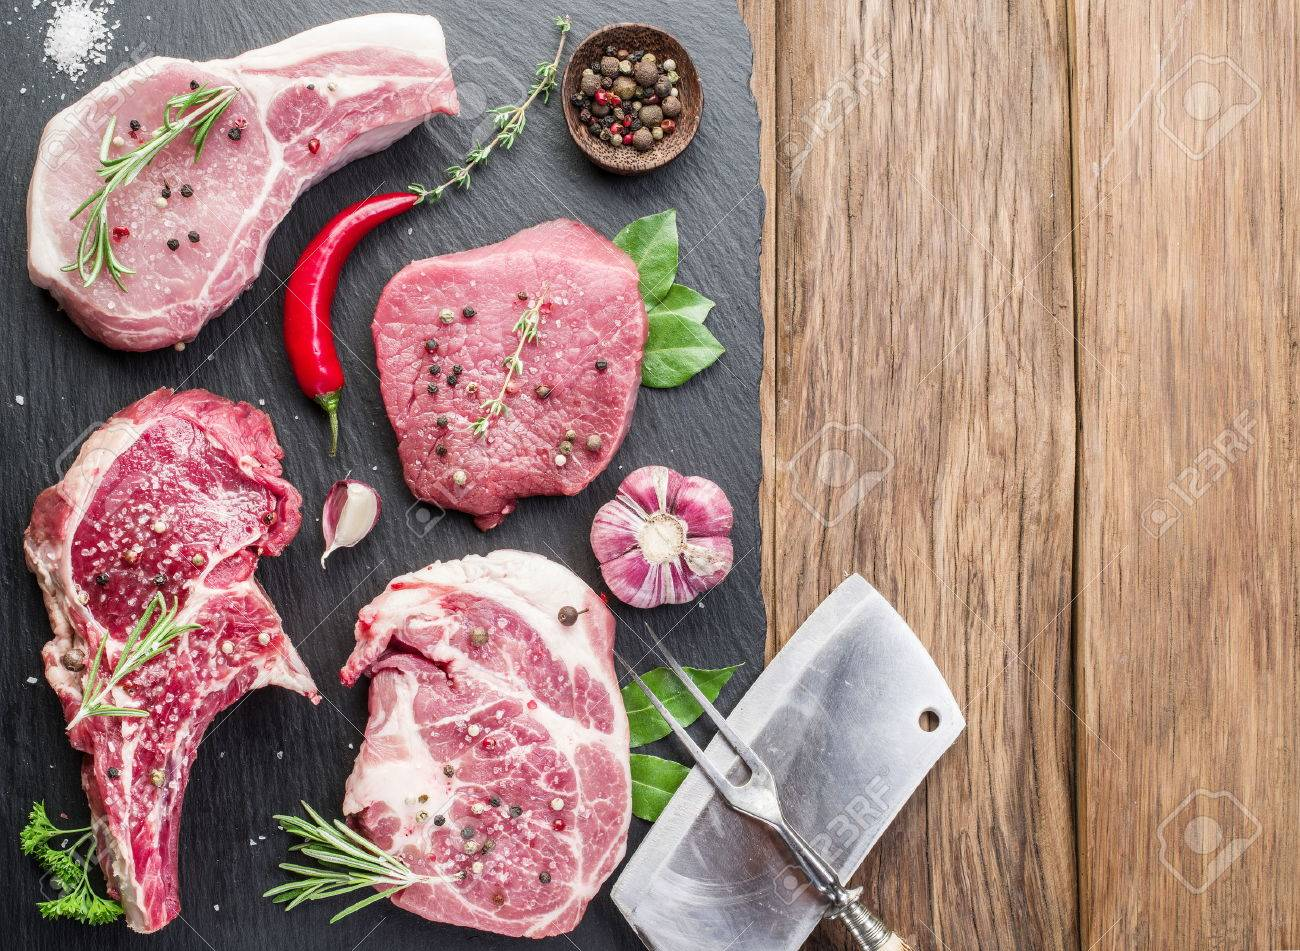 Raw meat steaks with spices on the wooden cutting board. Standard-Bild - 46222701